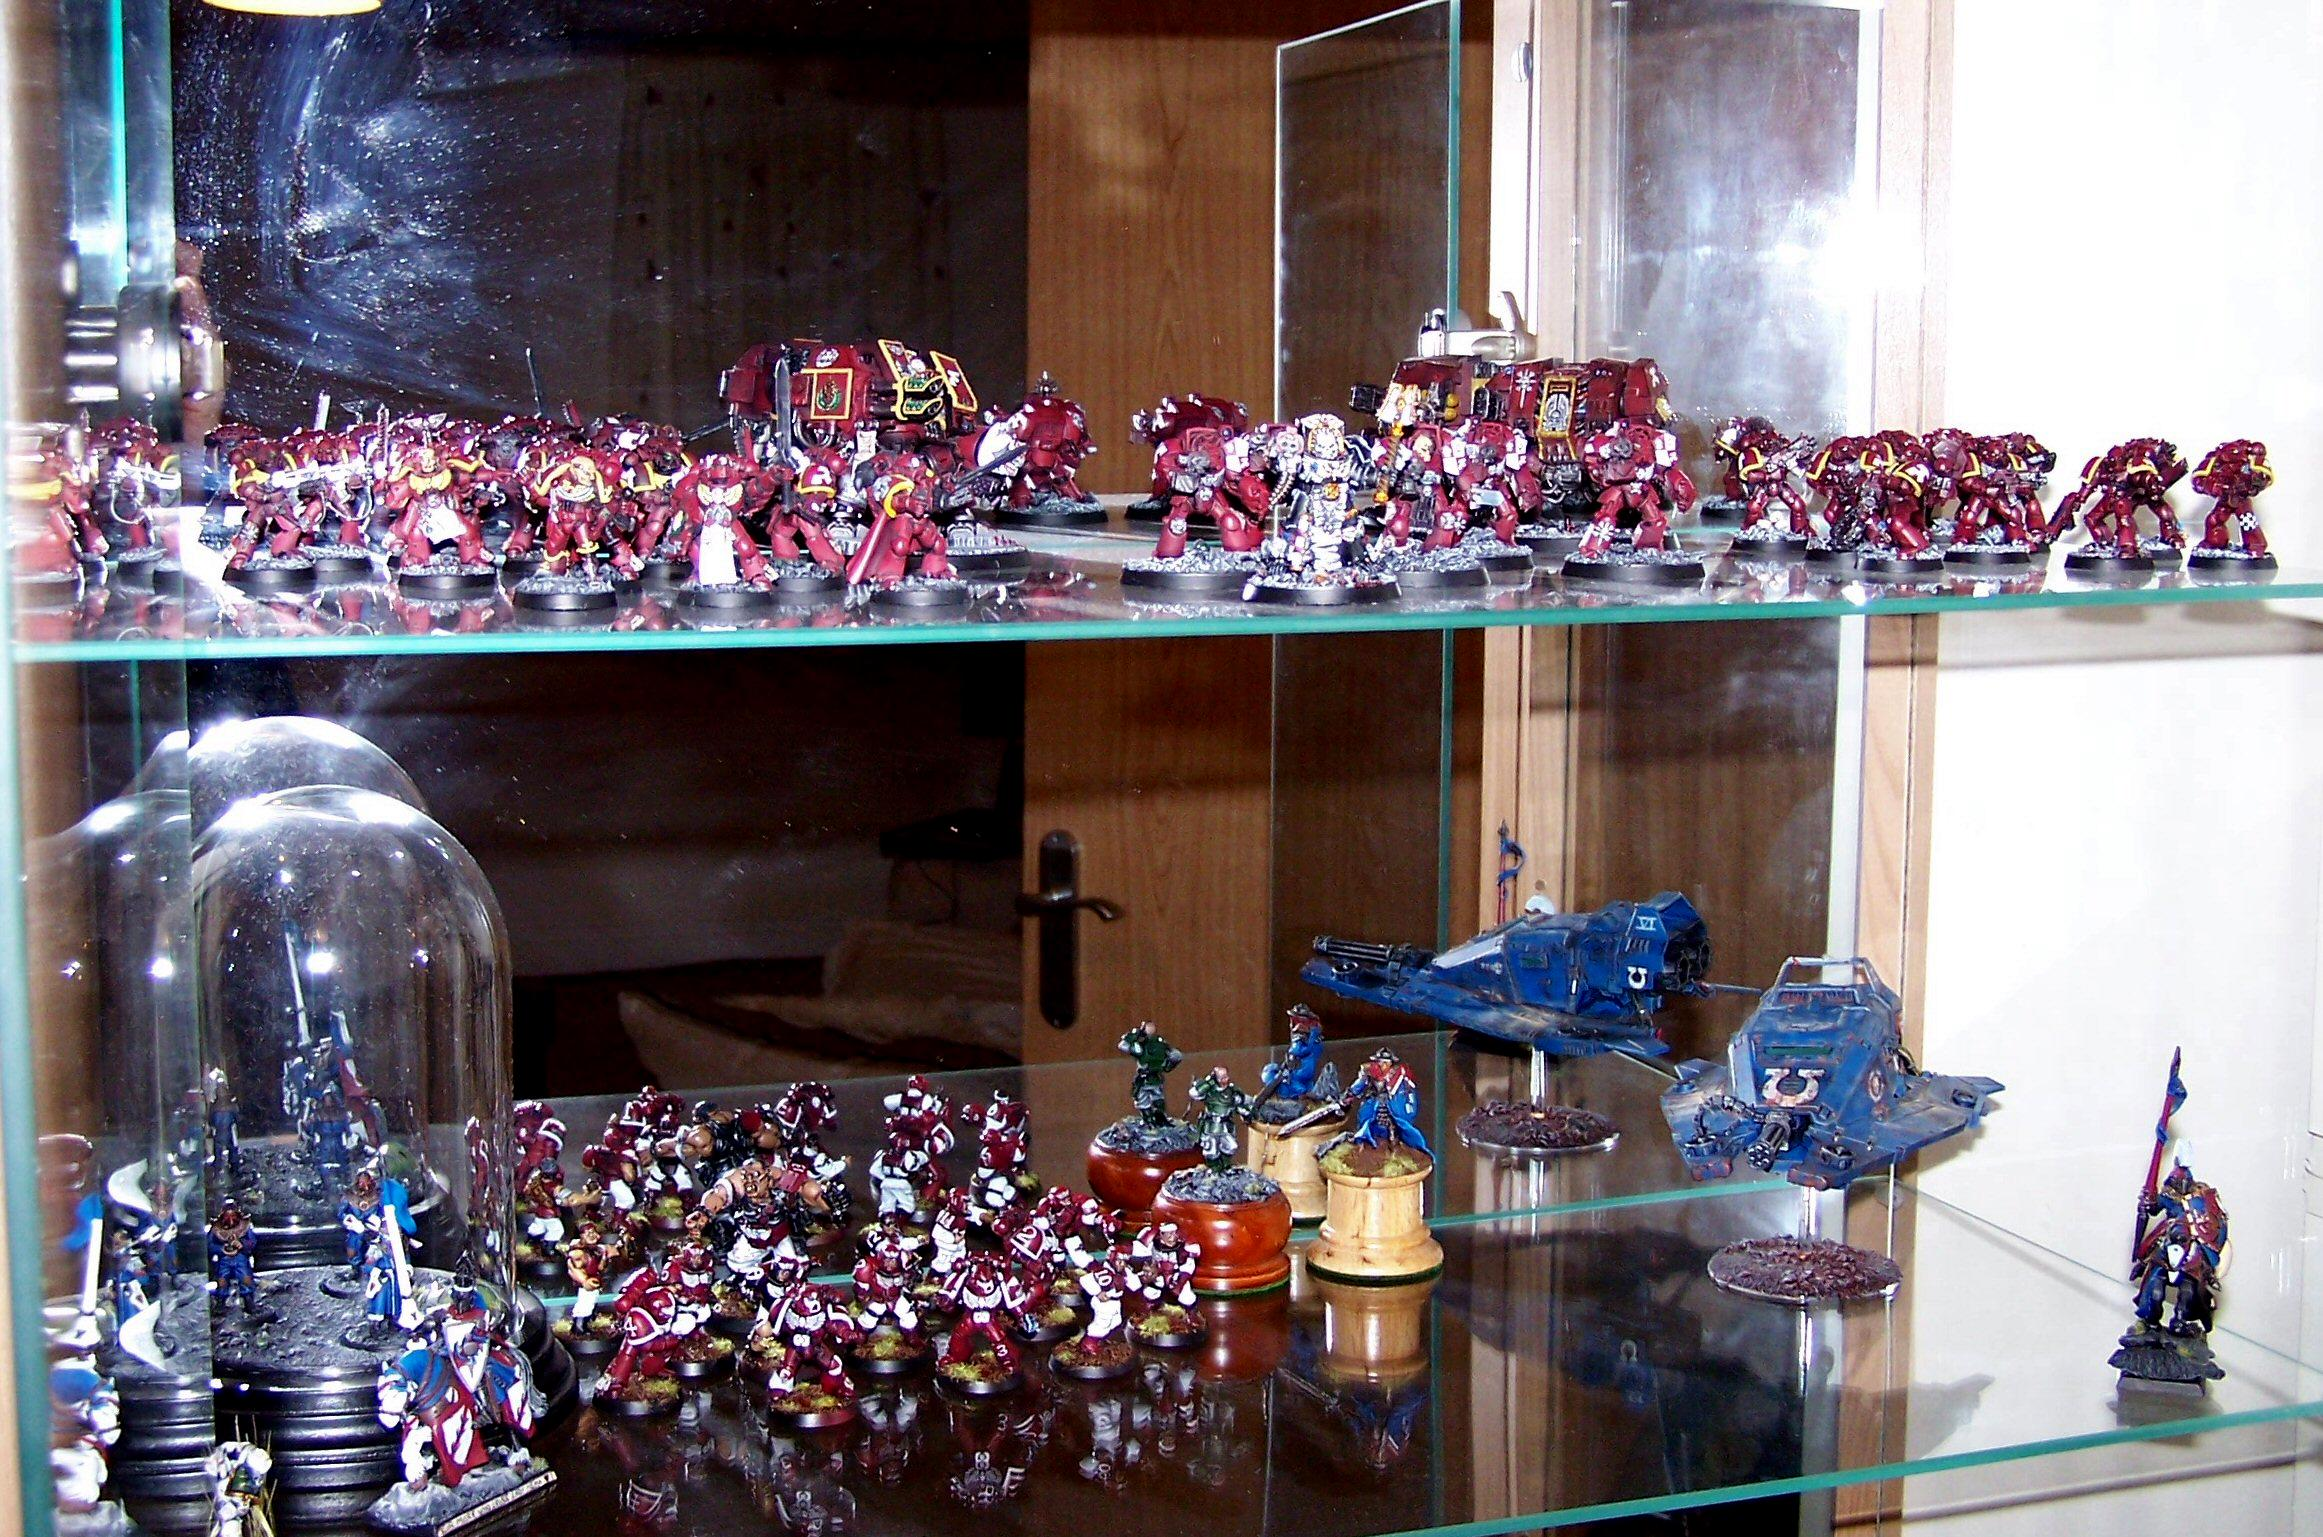 Army, Cabinet, Cabinet Space Marines, Emperor's Wings